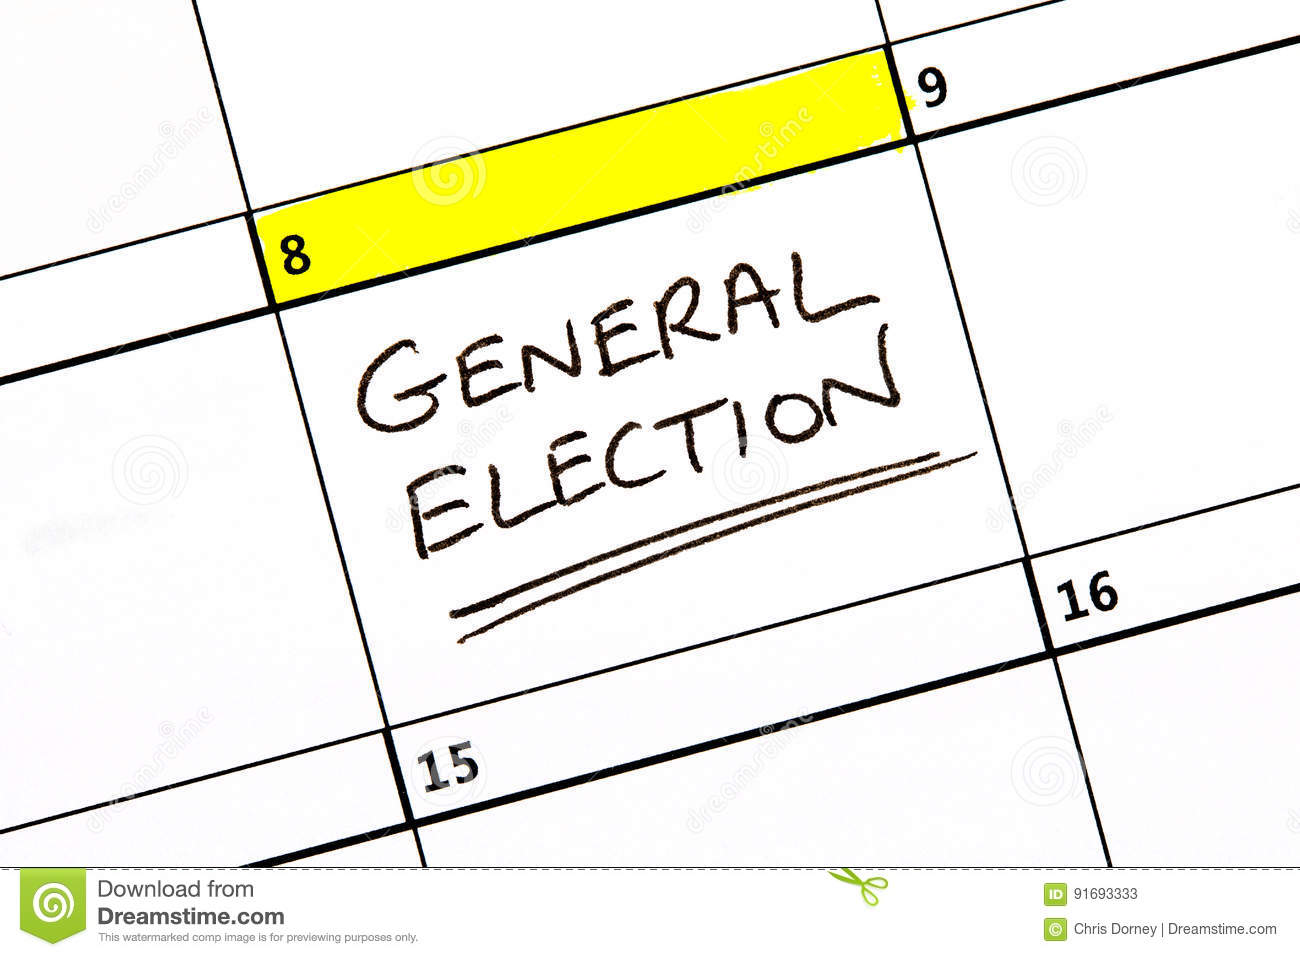 General election date in Perth